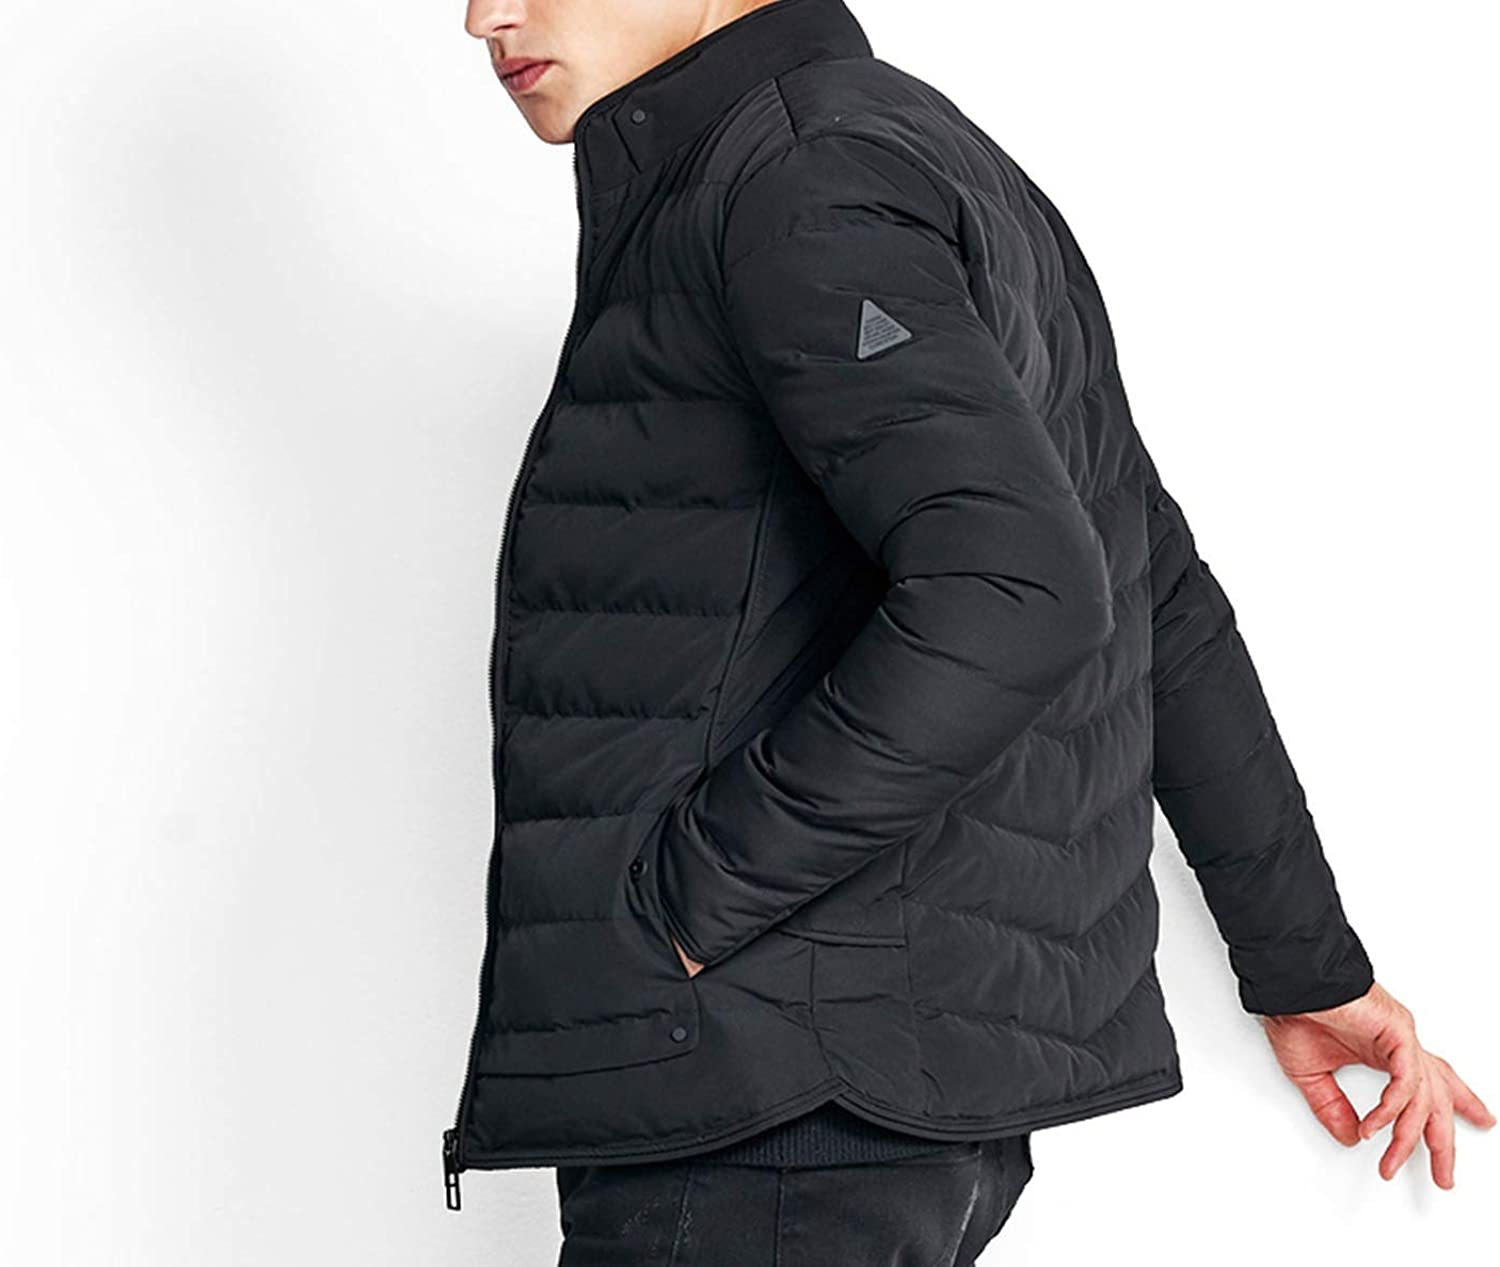 Mens Jackets Polyester Jackets and Coats Thick Warm Casual Handsome Young Men Parkas 89833,Black,L